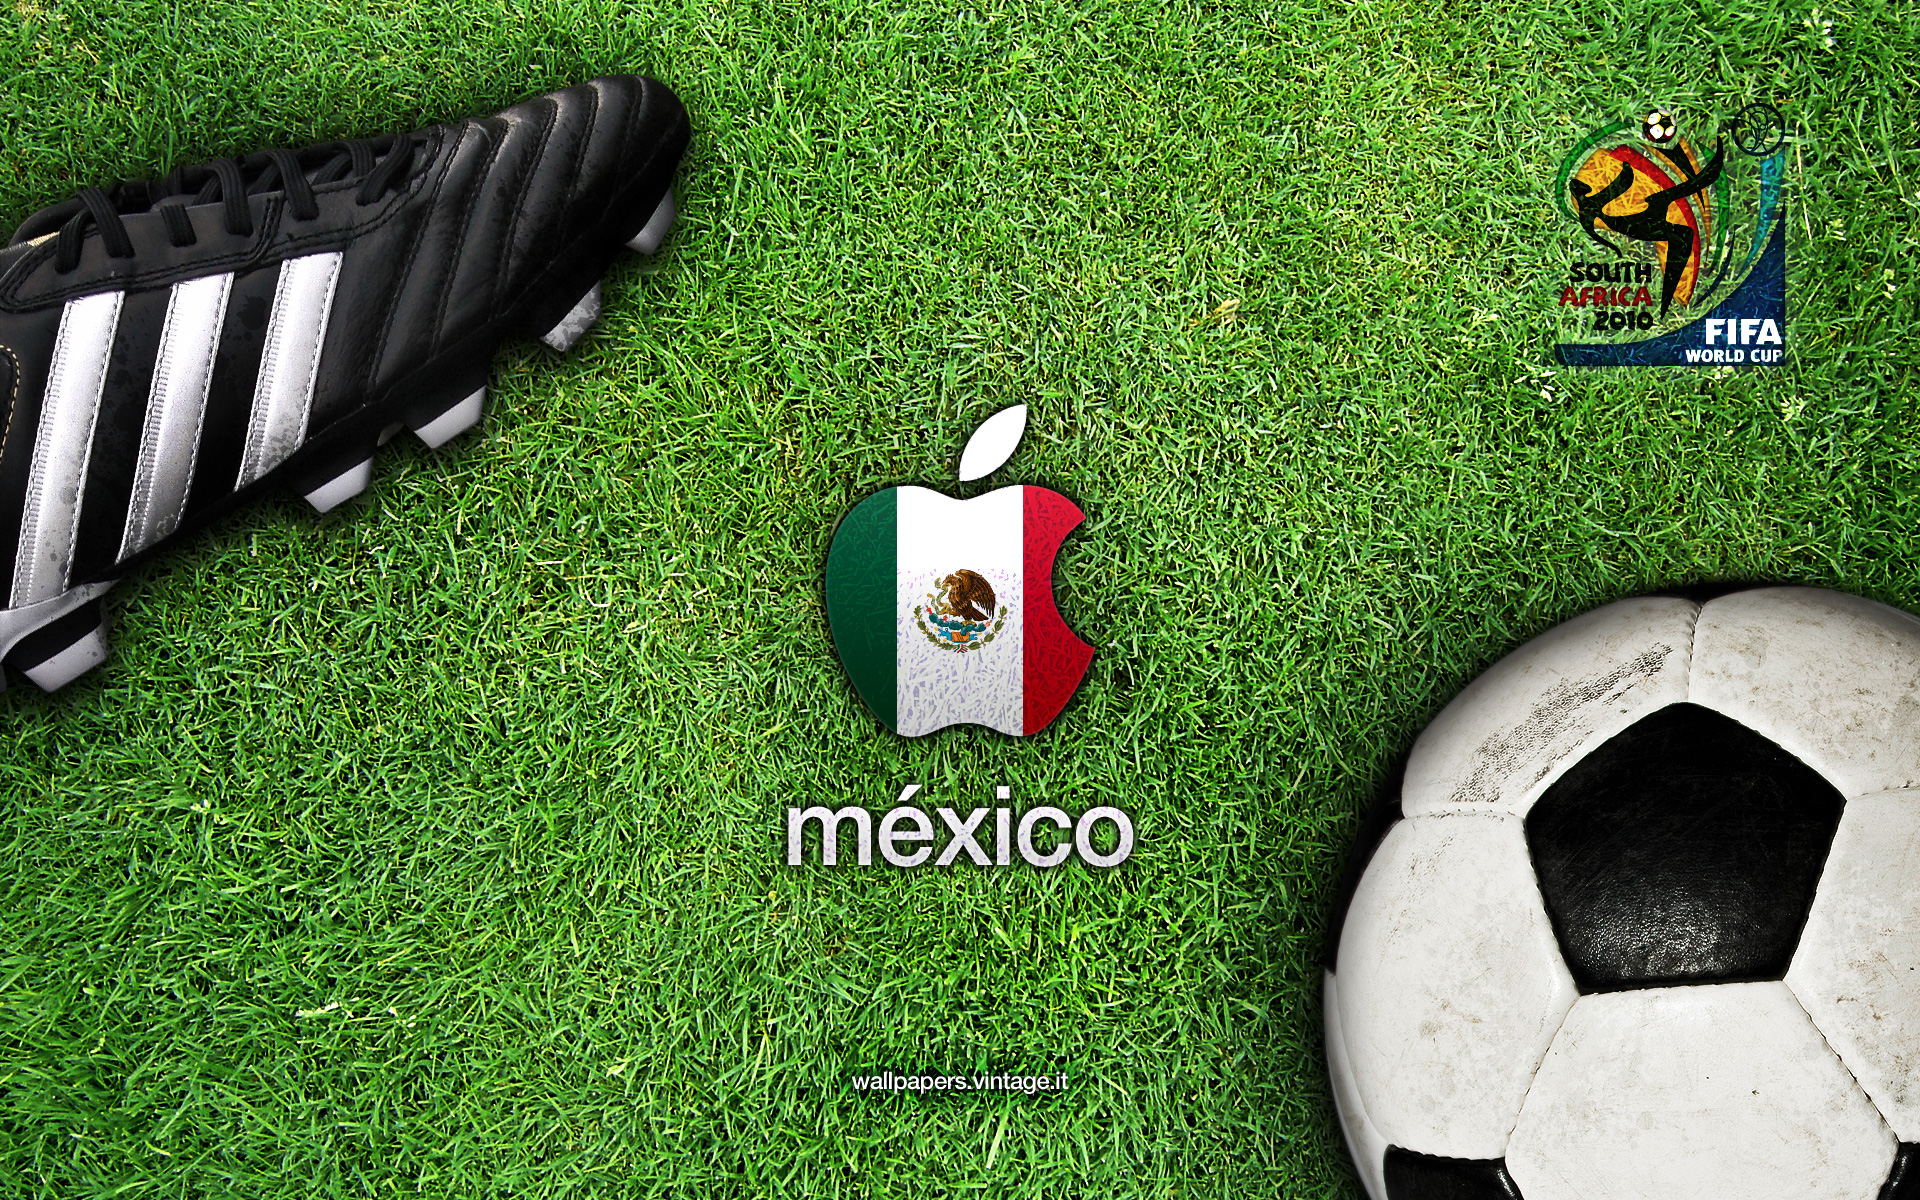 mexico fifa world cup wallpaper - free desktop hd ipad iphone wallpapers